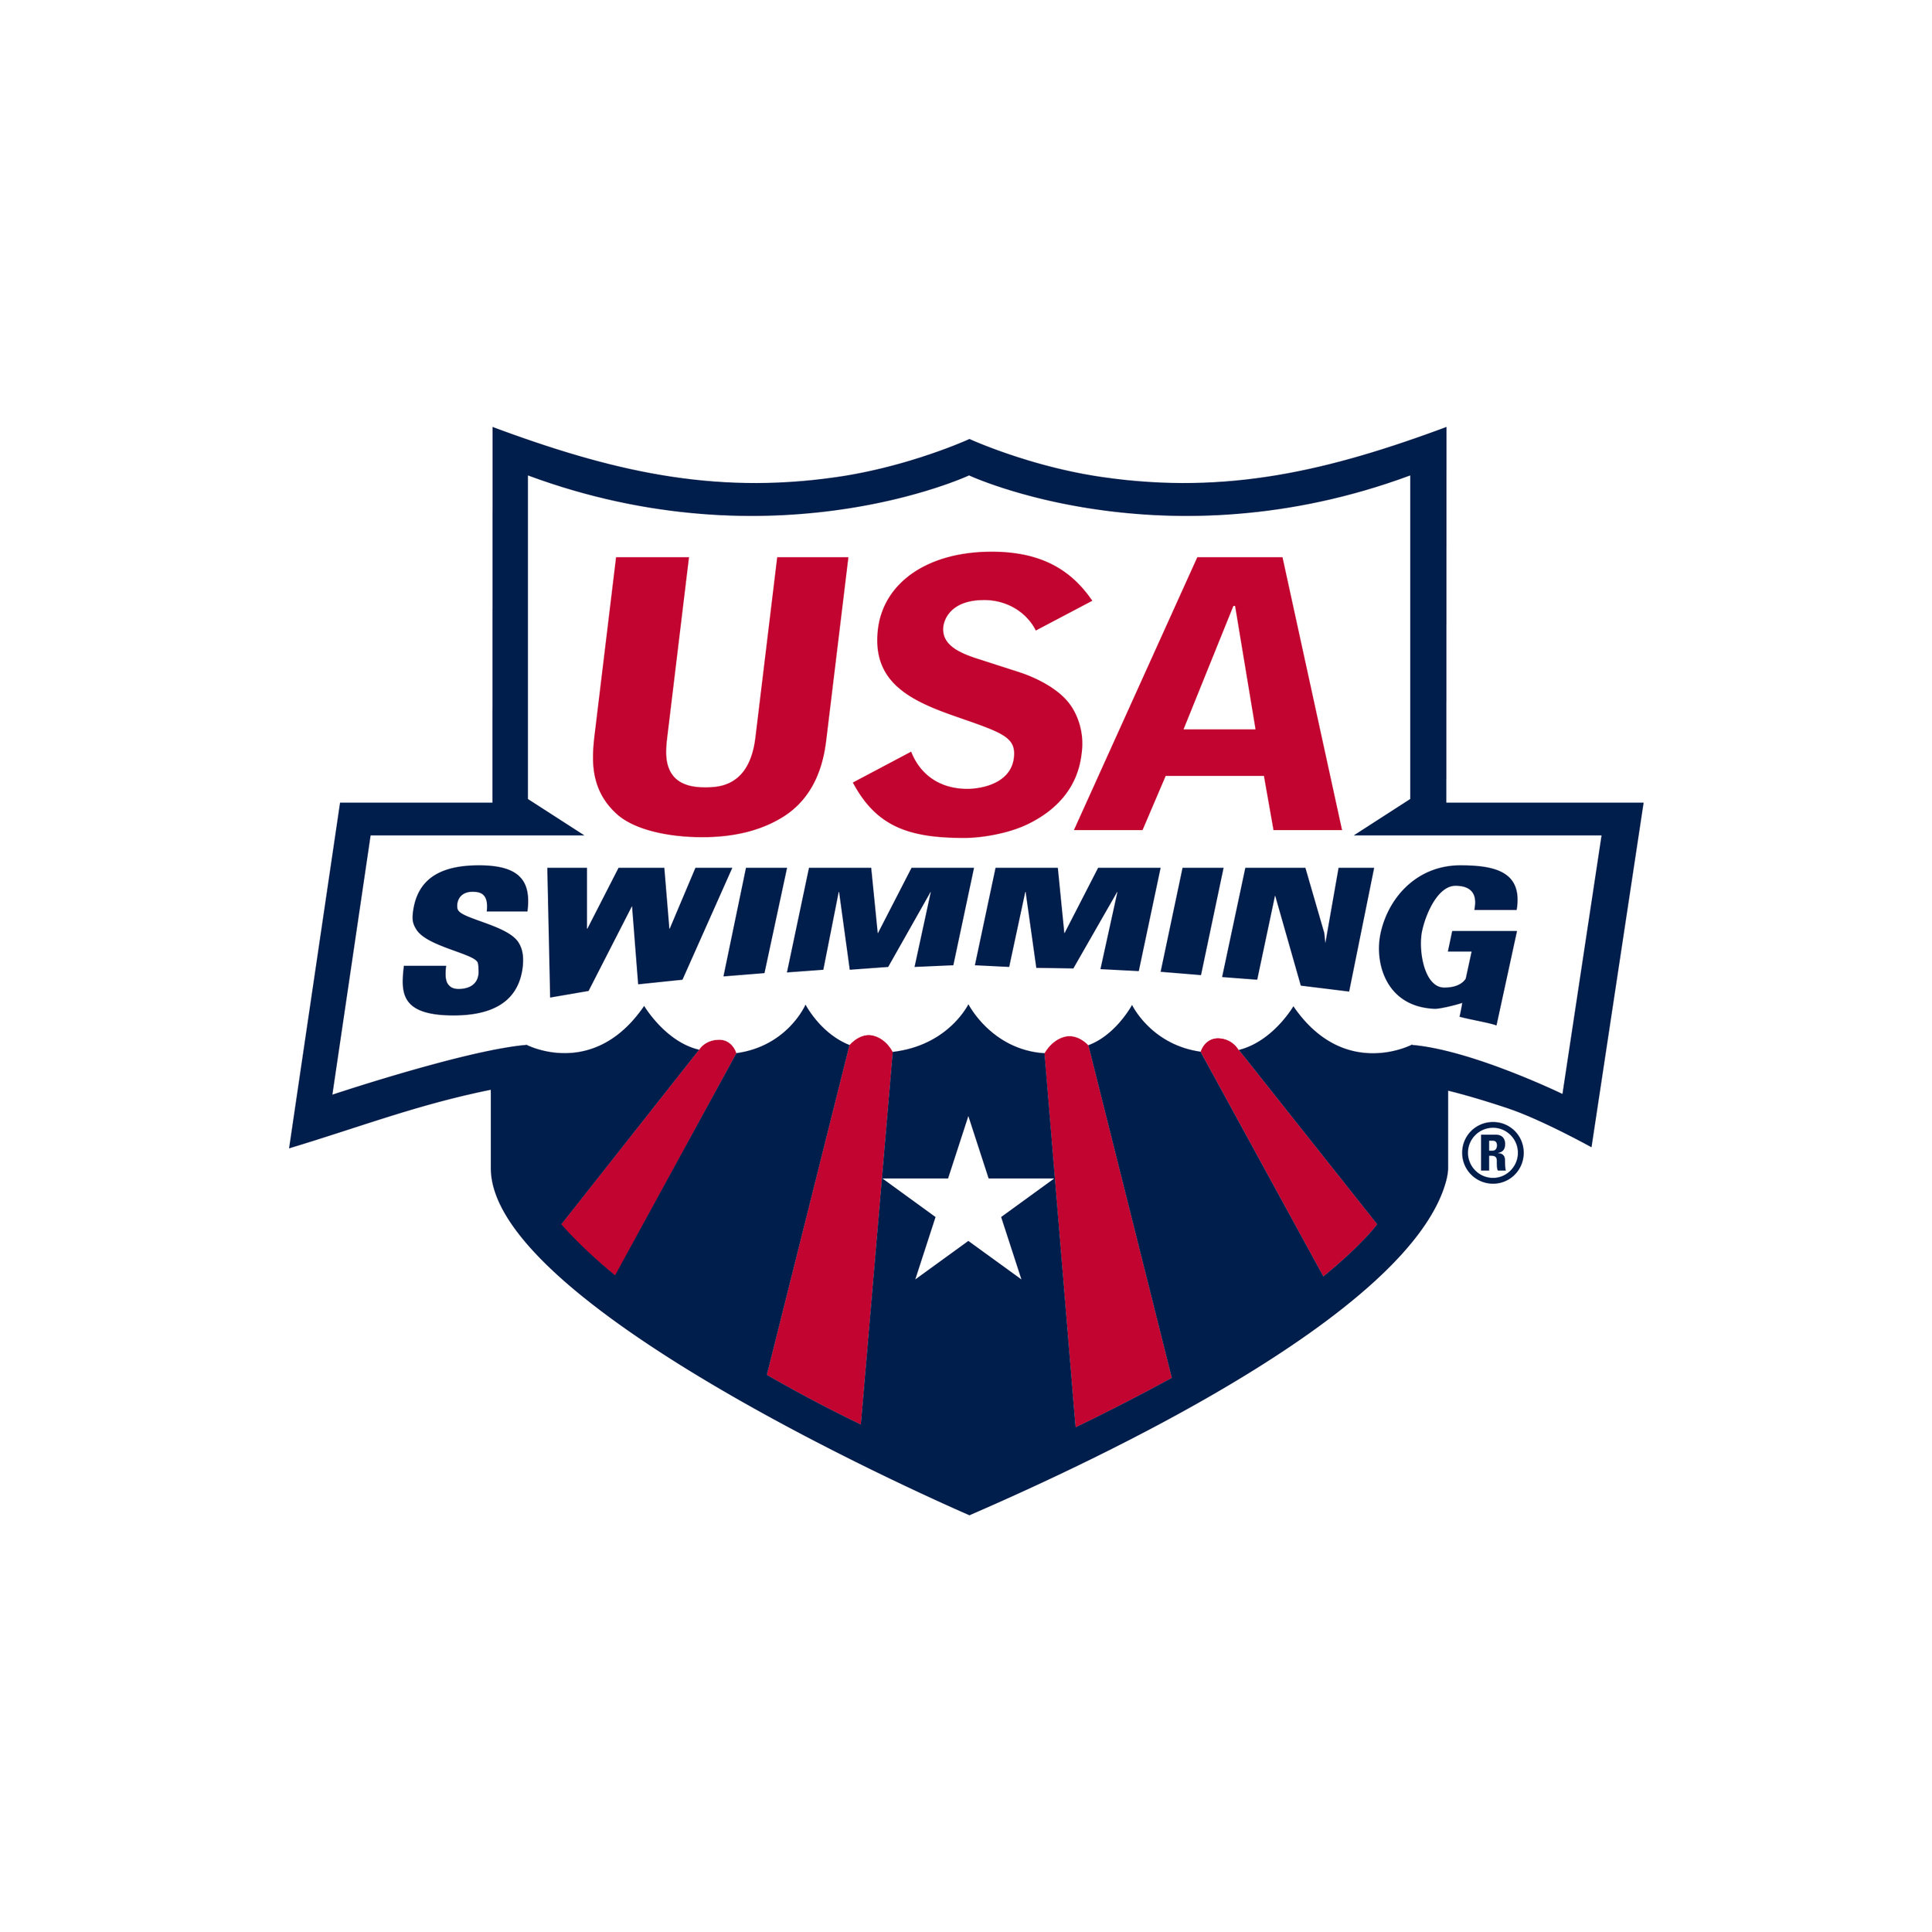 USA Swimming.jpg